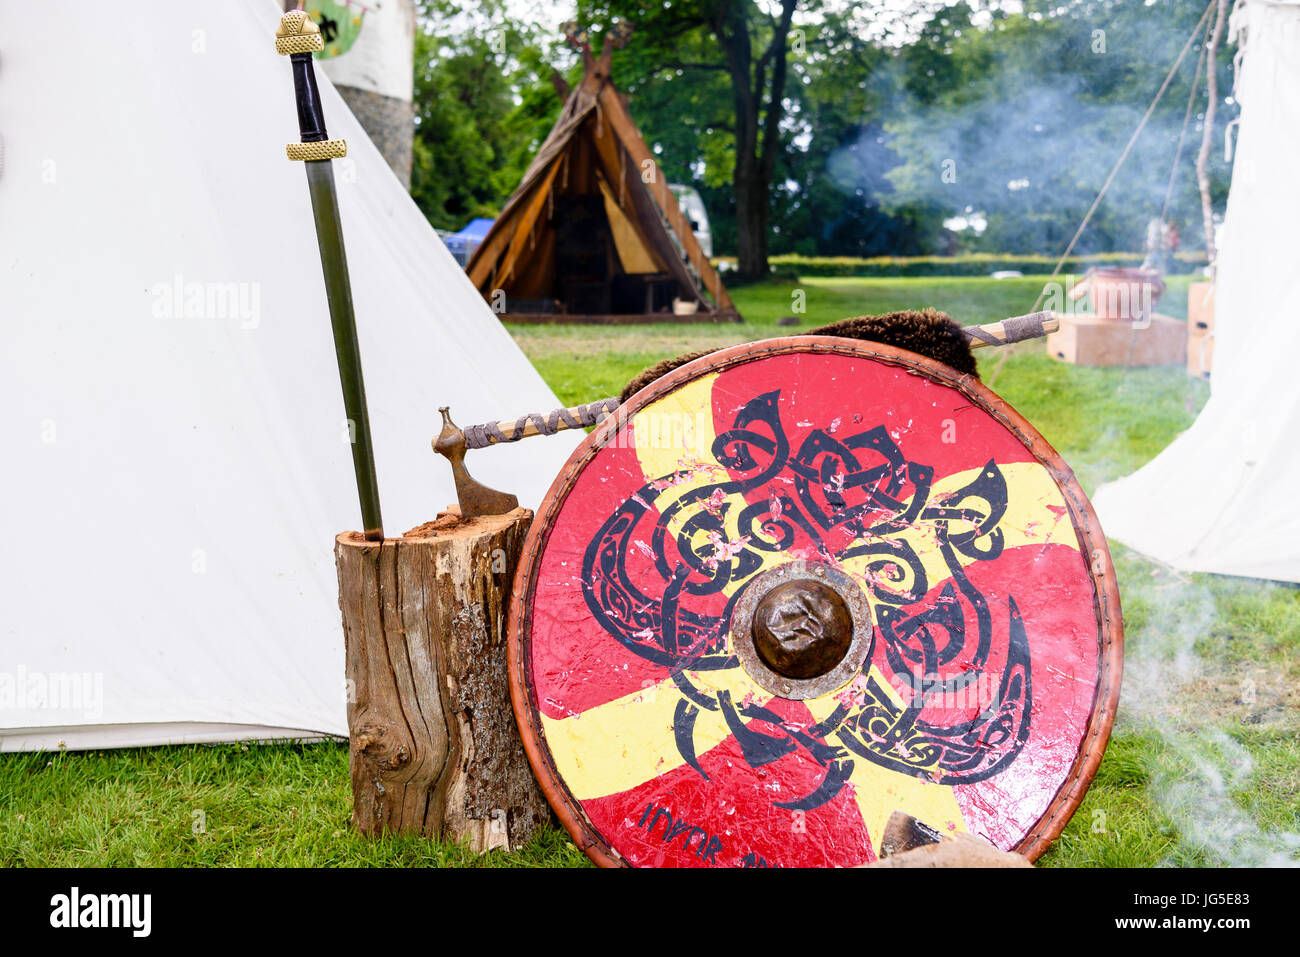 Sword, axe and shield belonging to a medieval soldier beside a fire at an army camp site. - Stock Image